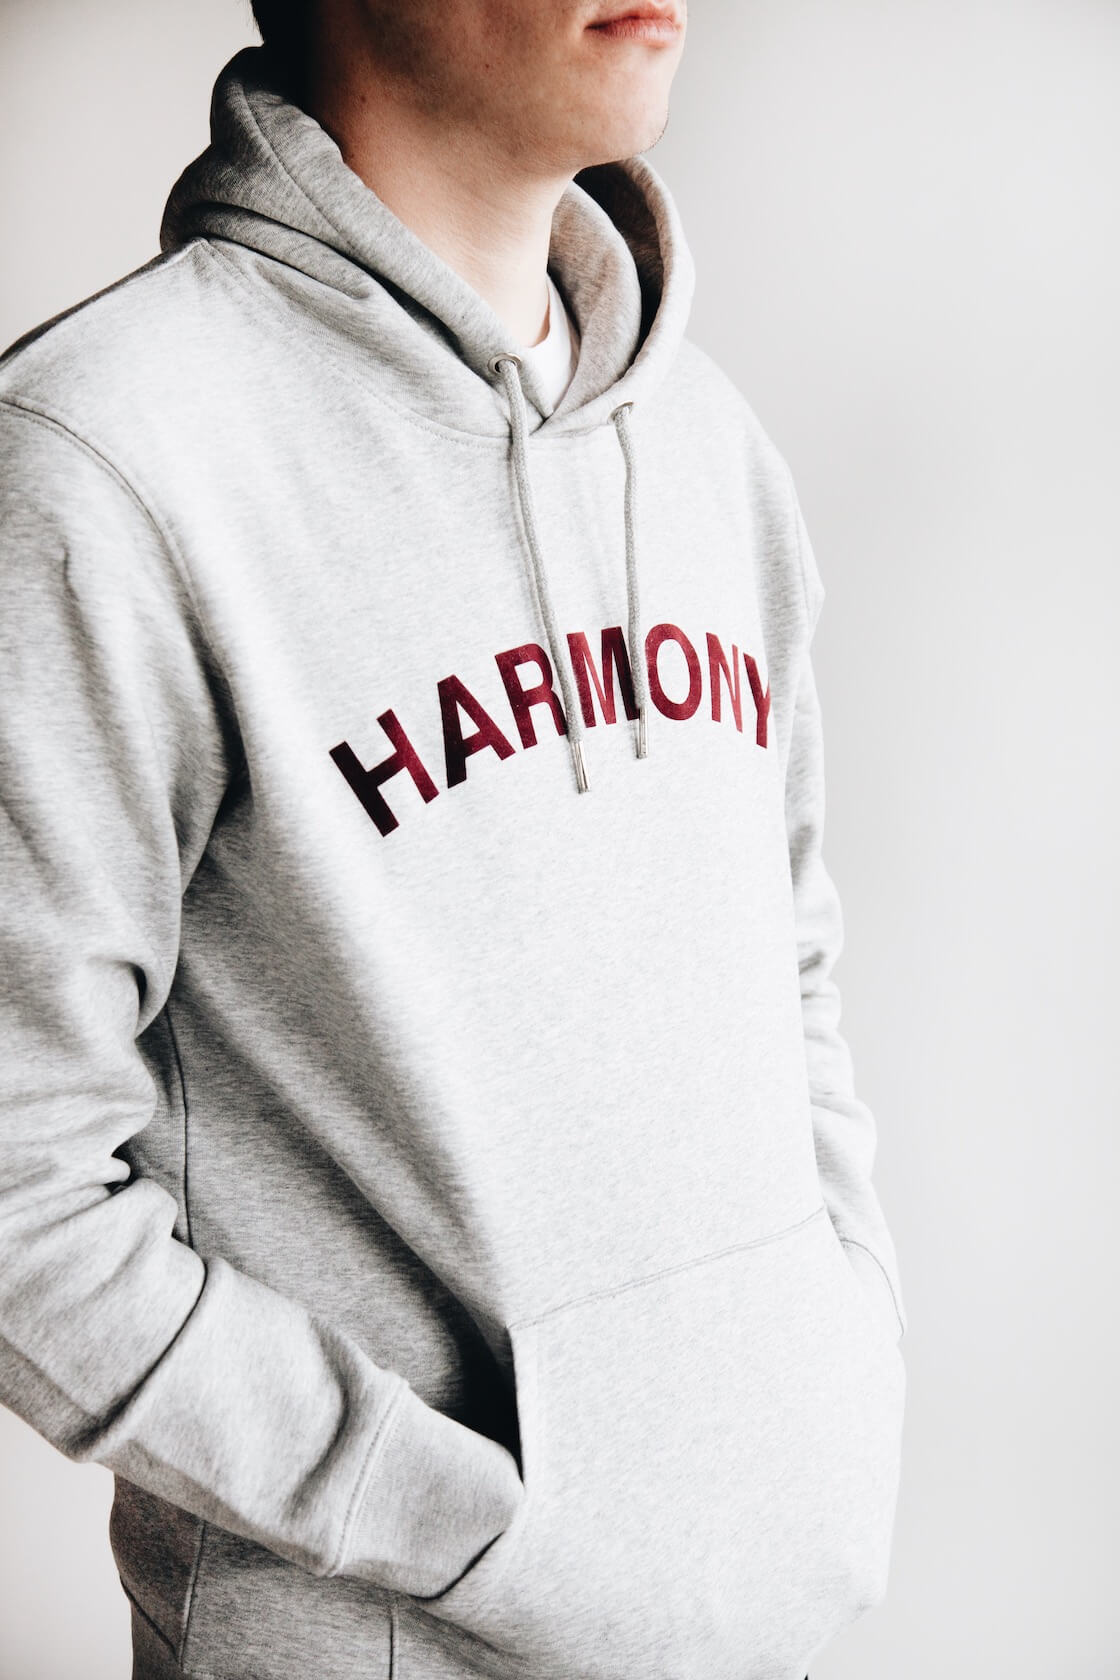 harmony paris sany velour sweatshirt on body